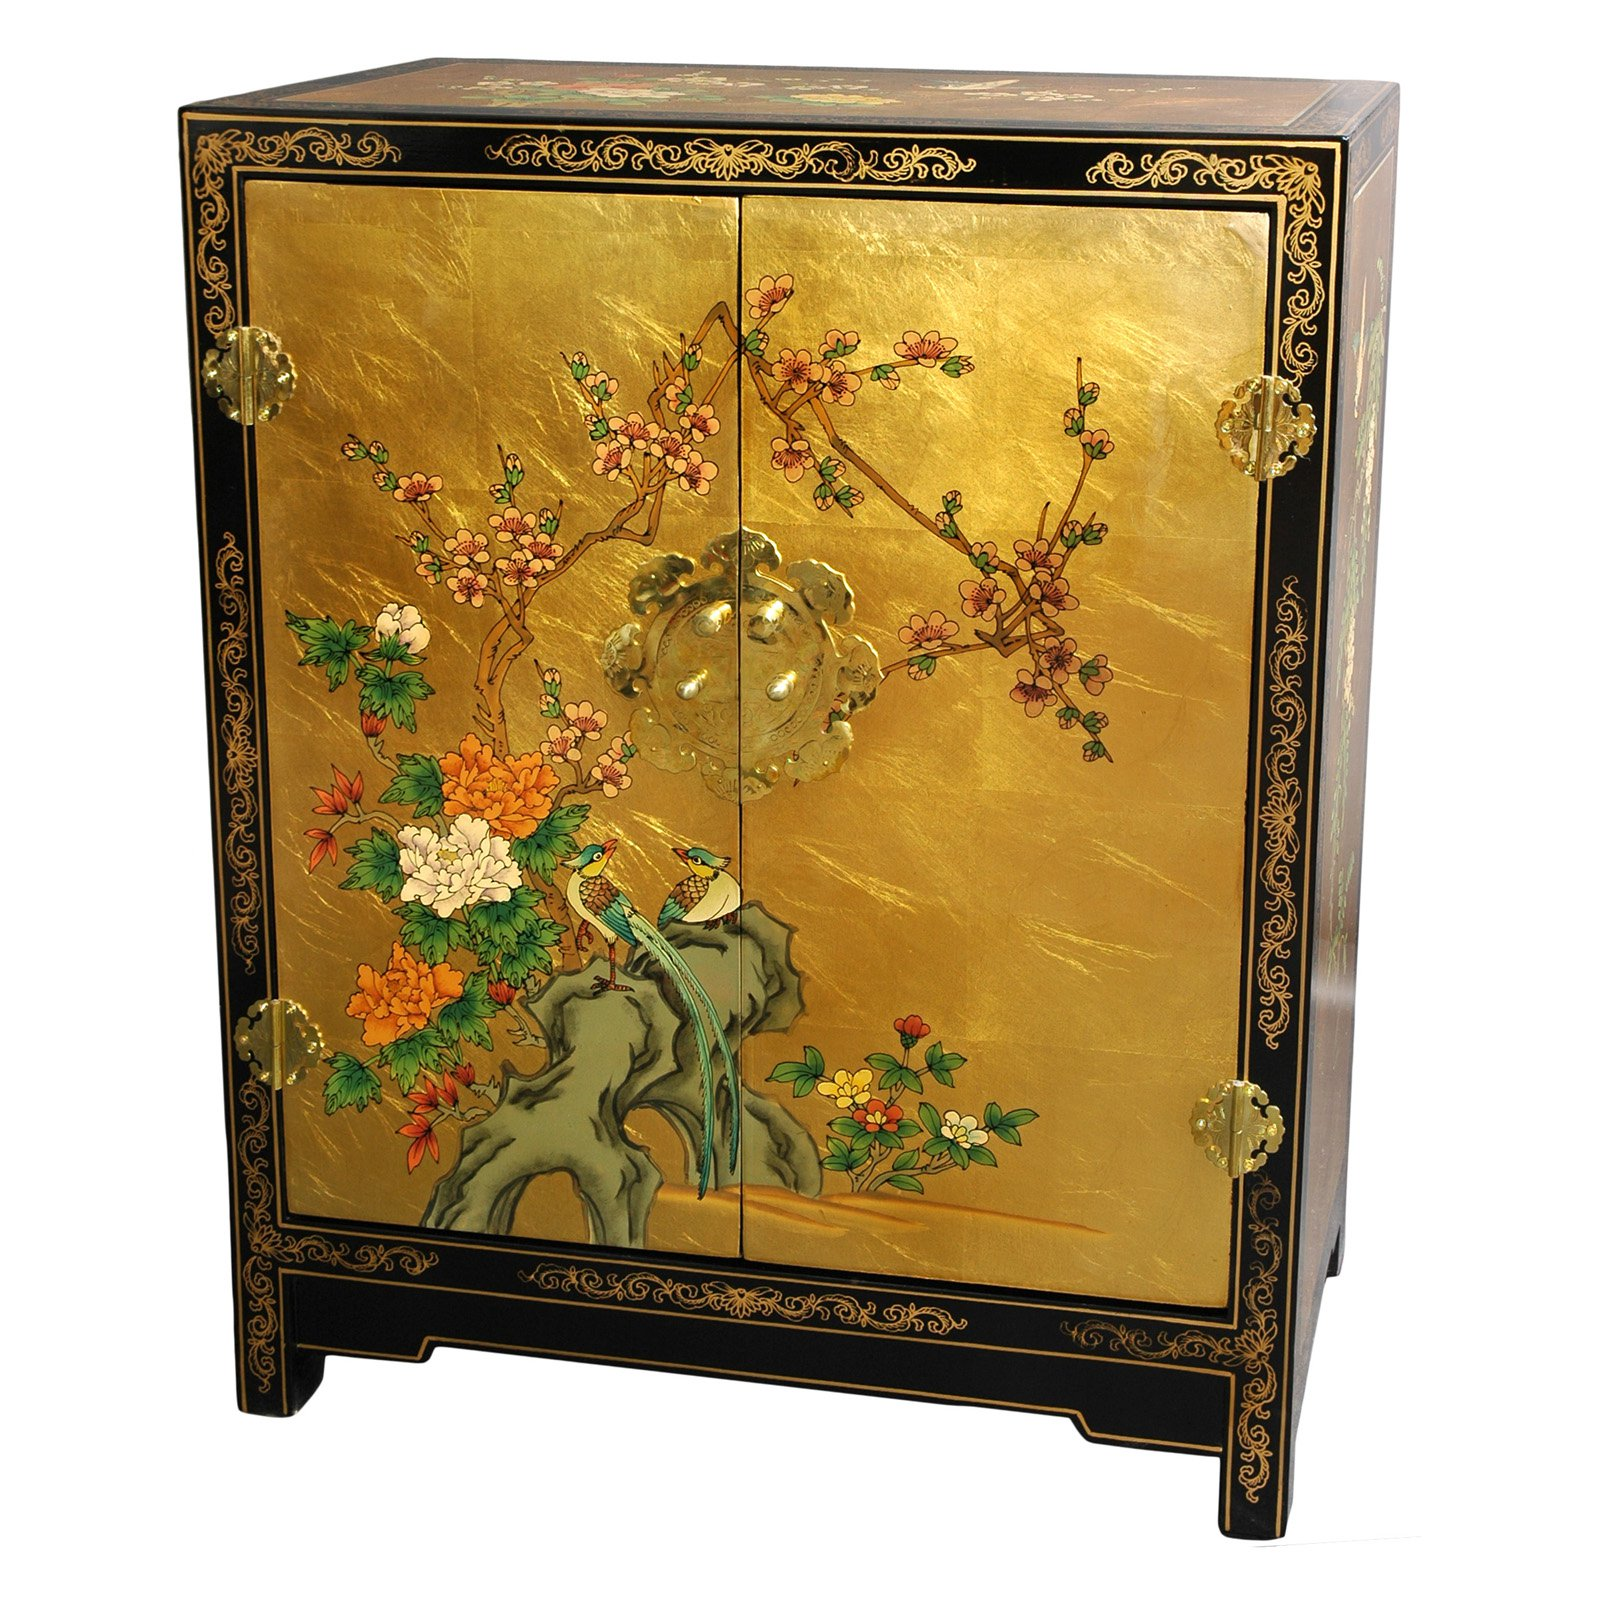 Gold Leaf Lacquer Cabinet